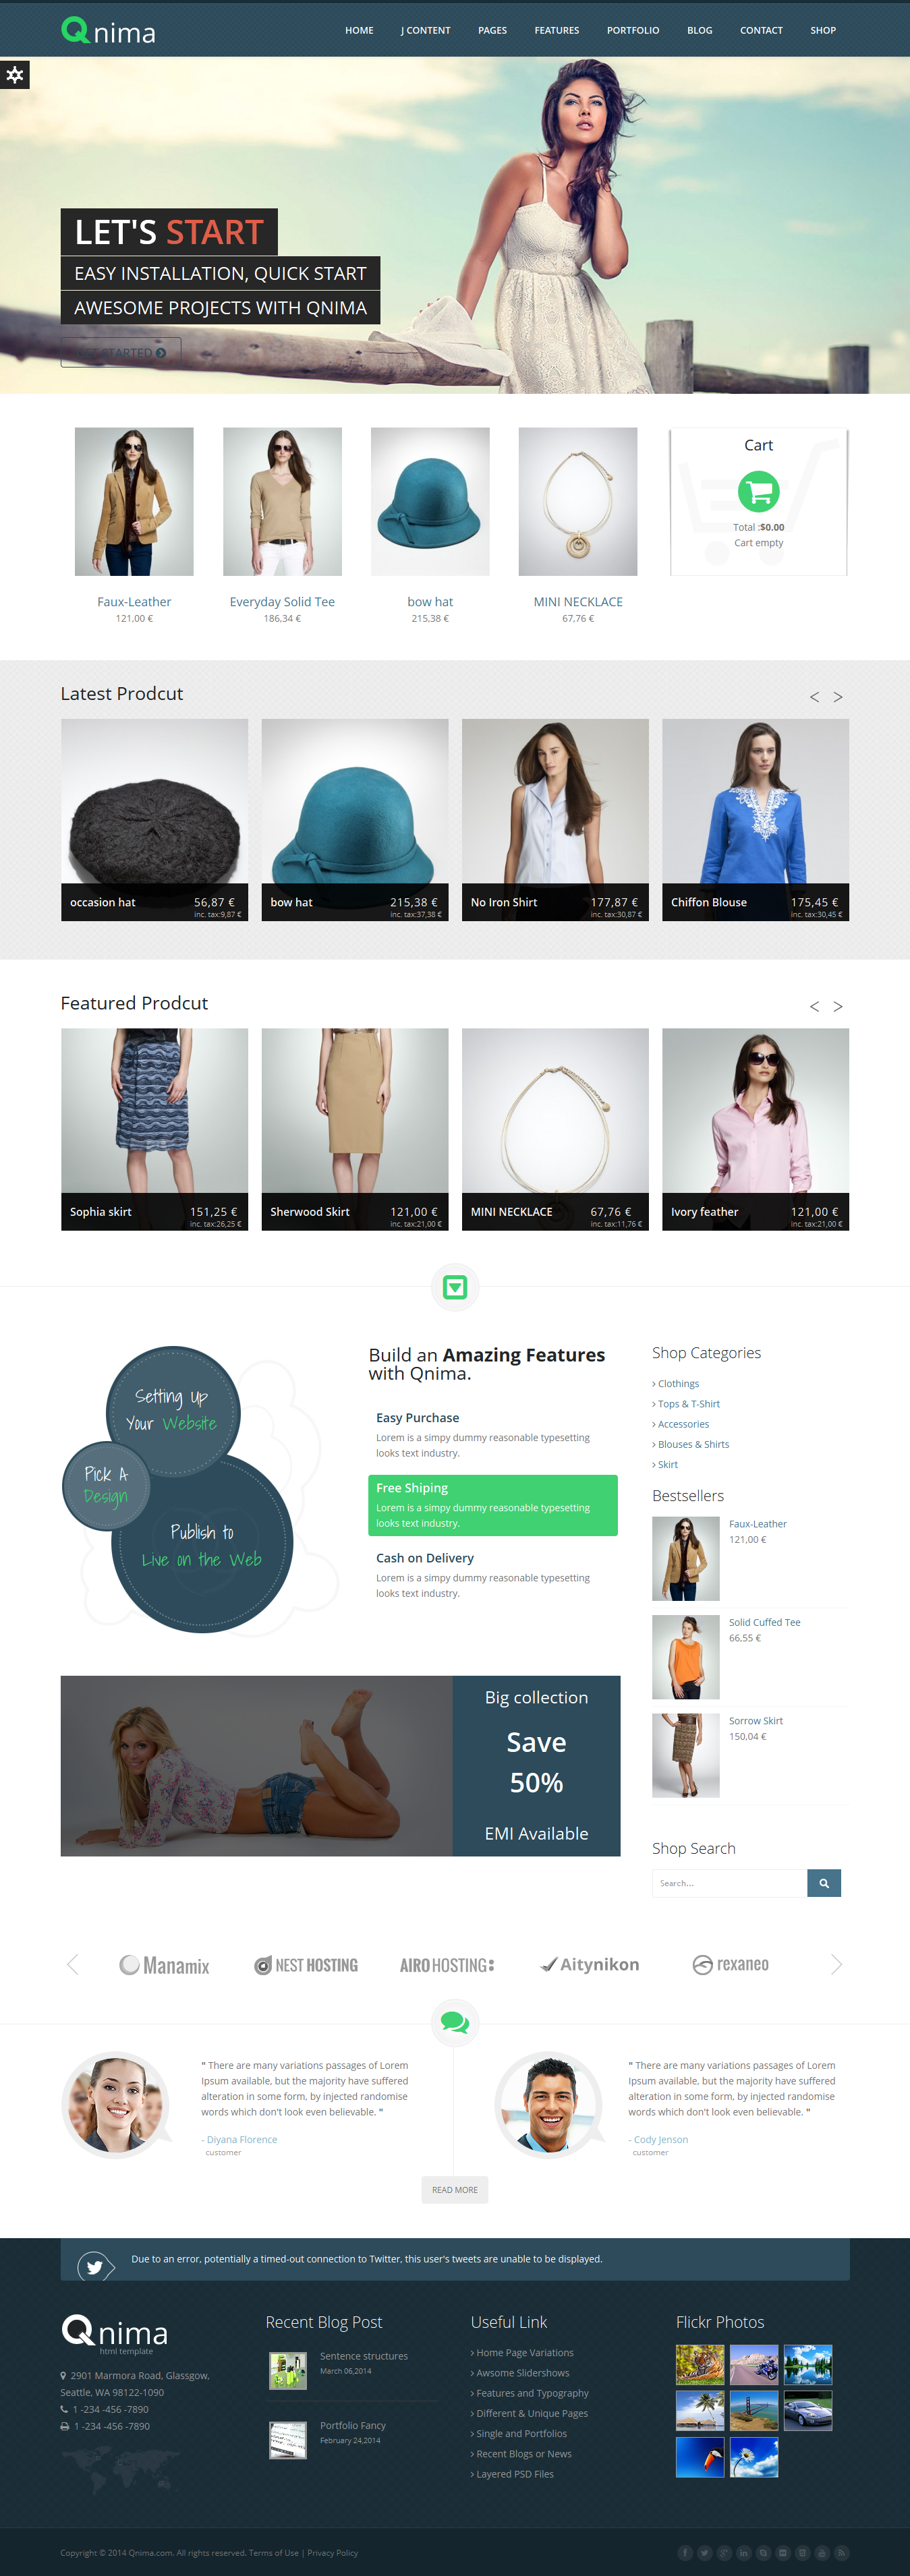 03_shop_homepage.png